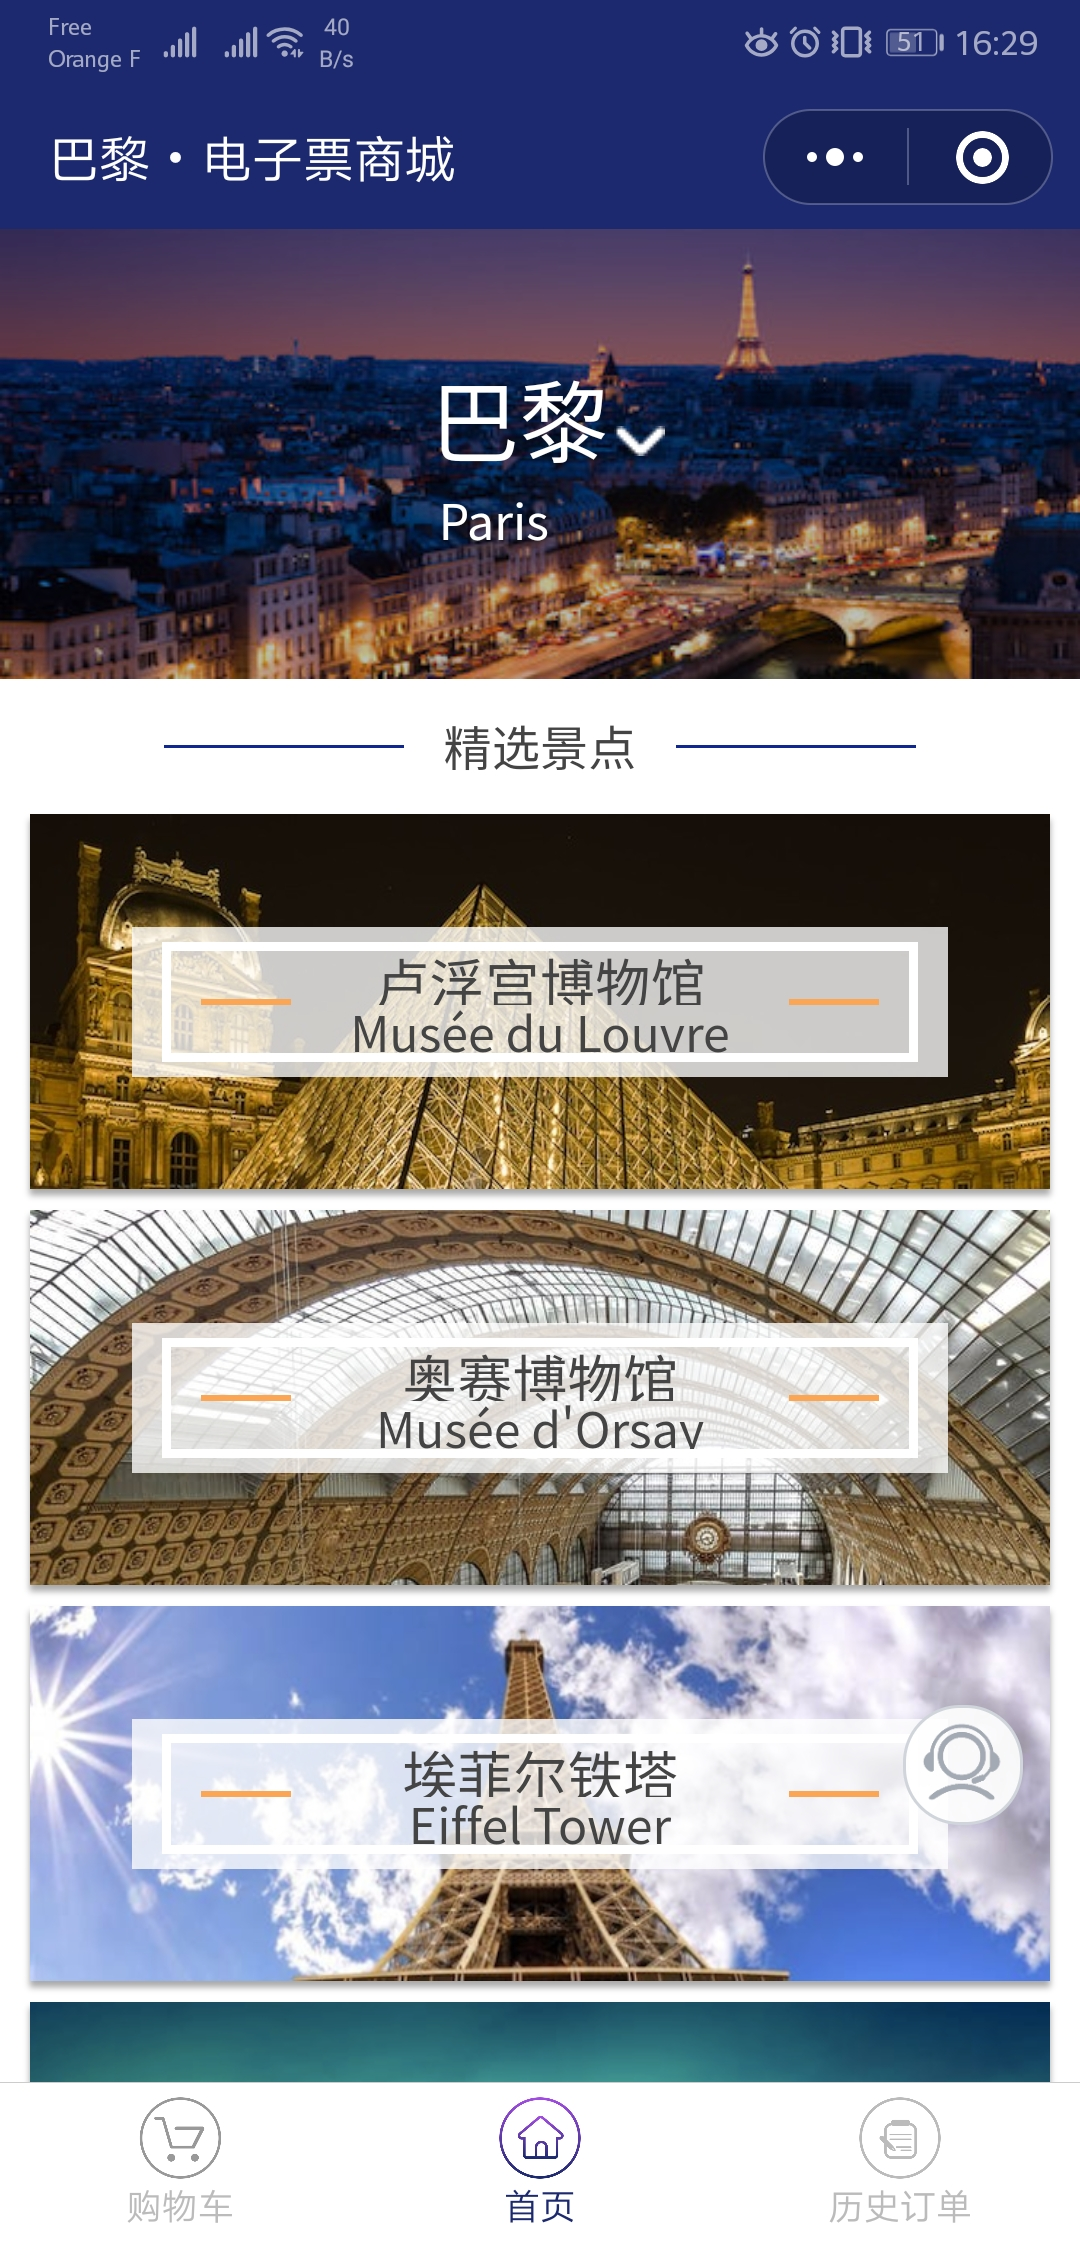 Homepage-Europass-360° digital services targeting Chinese Travellers